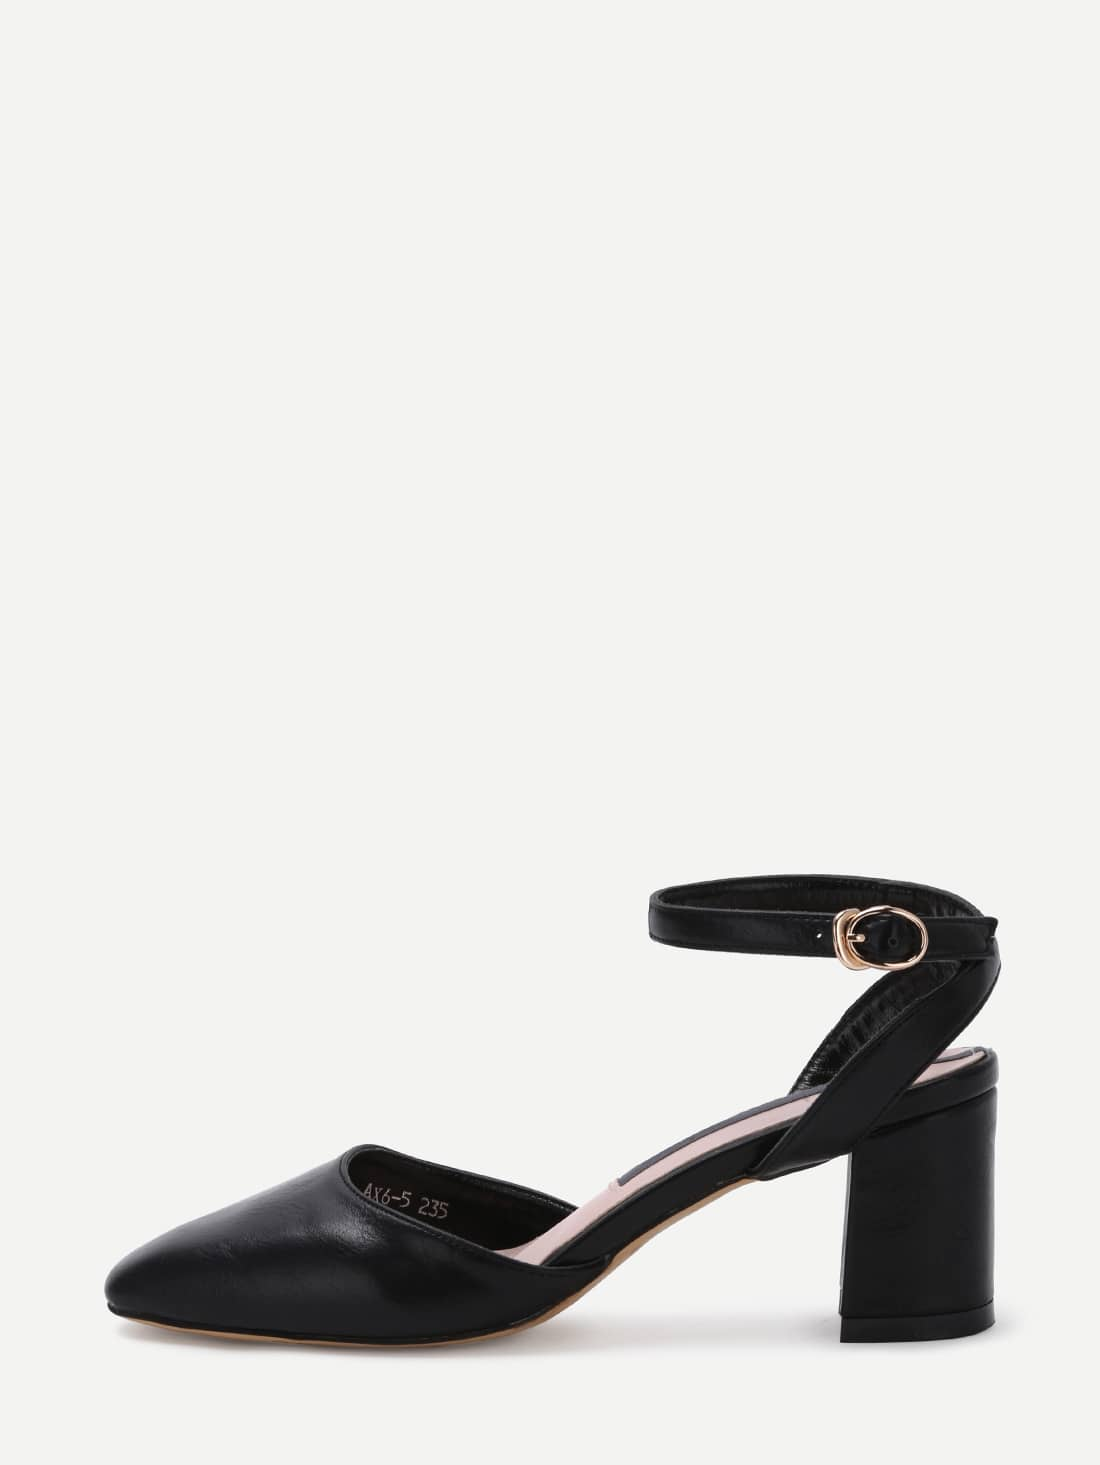 Pointed Out Ankle Strap Chunky Pumps shoes160427813